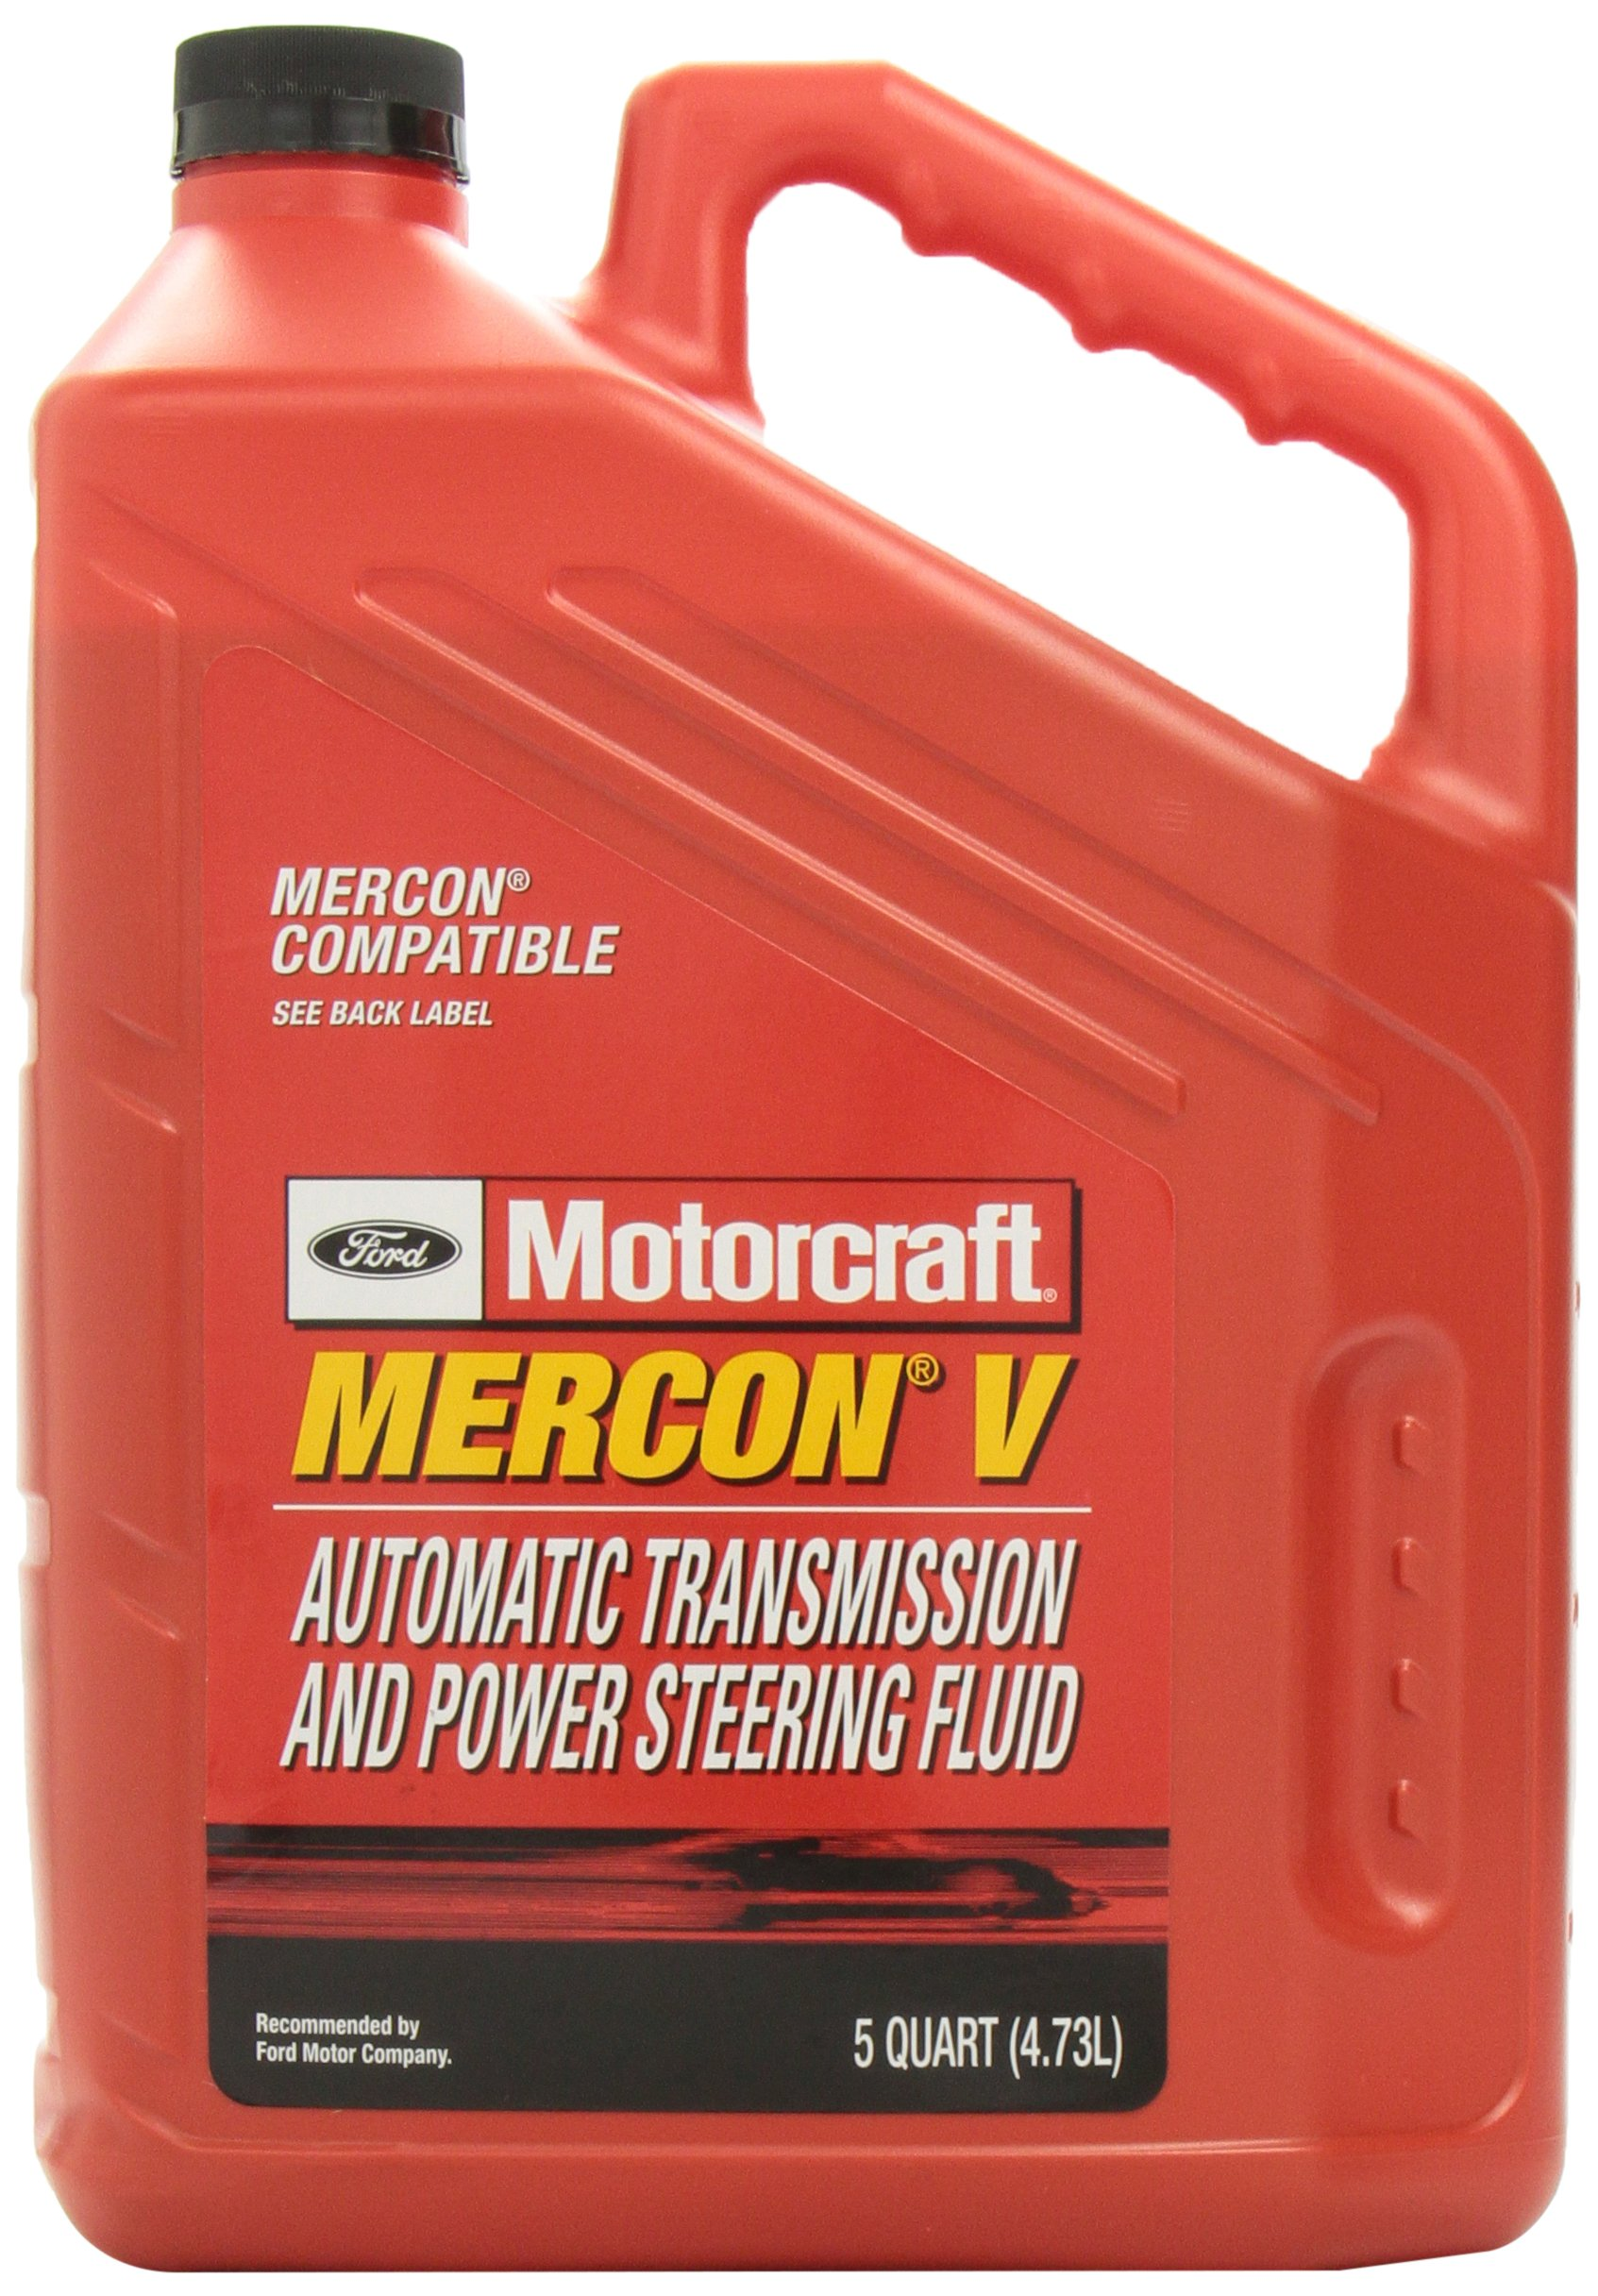 Genuine Ford XT-5-5QM MERCON-V Automatic Transmission and Power Steering Fluid - 5 Quart by Ford